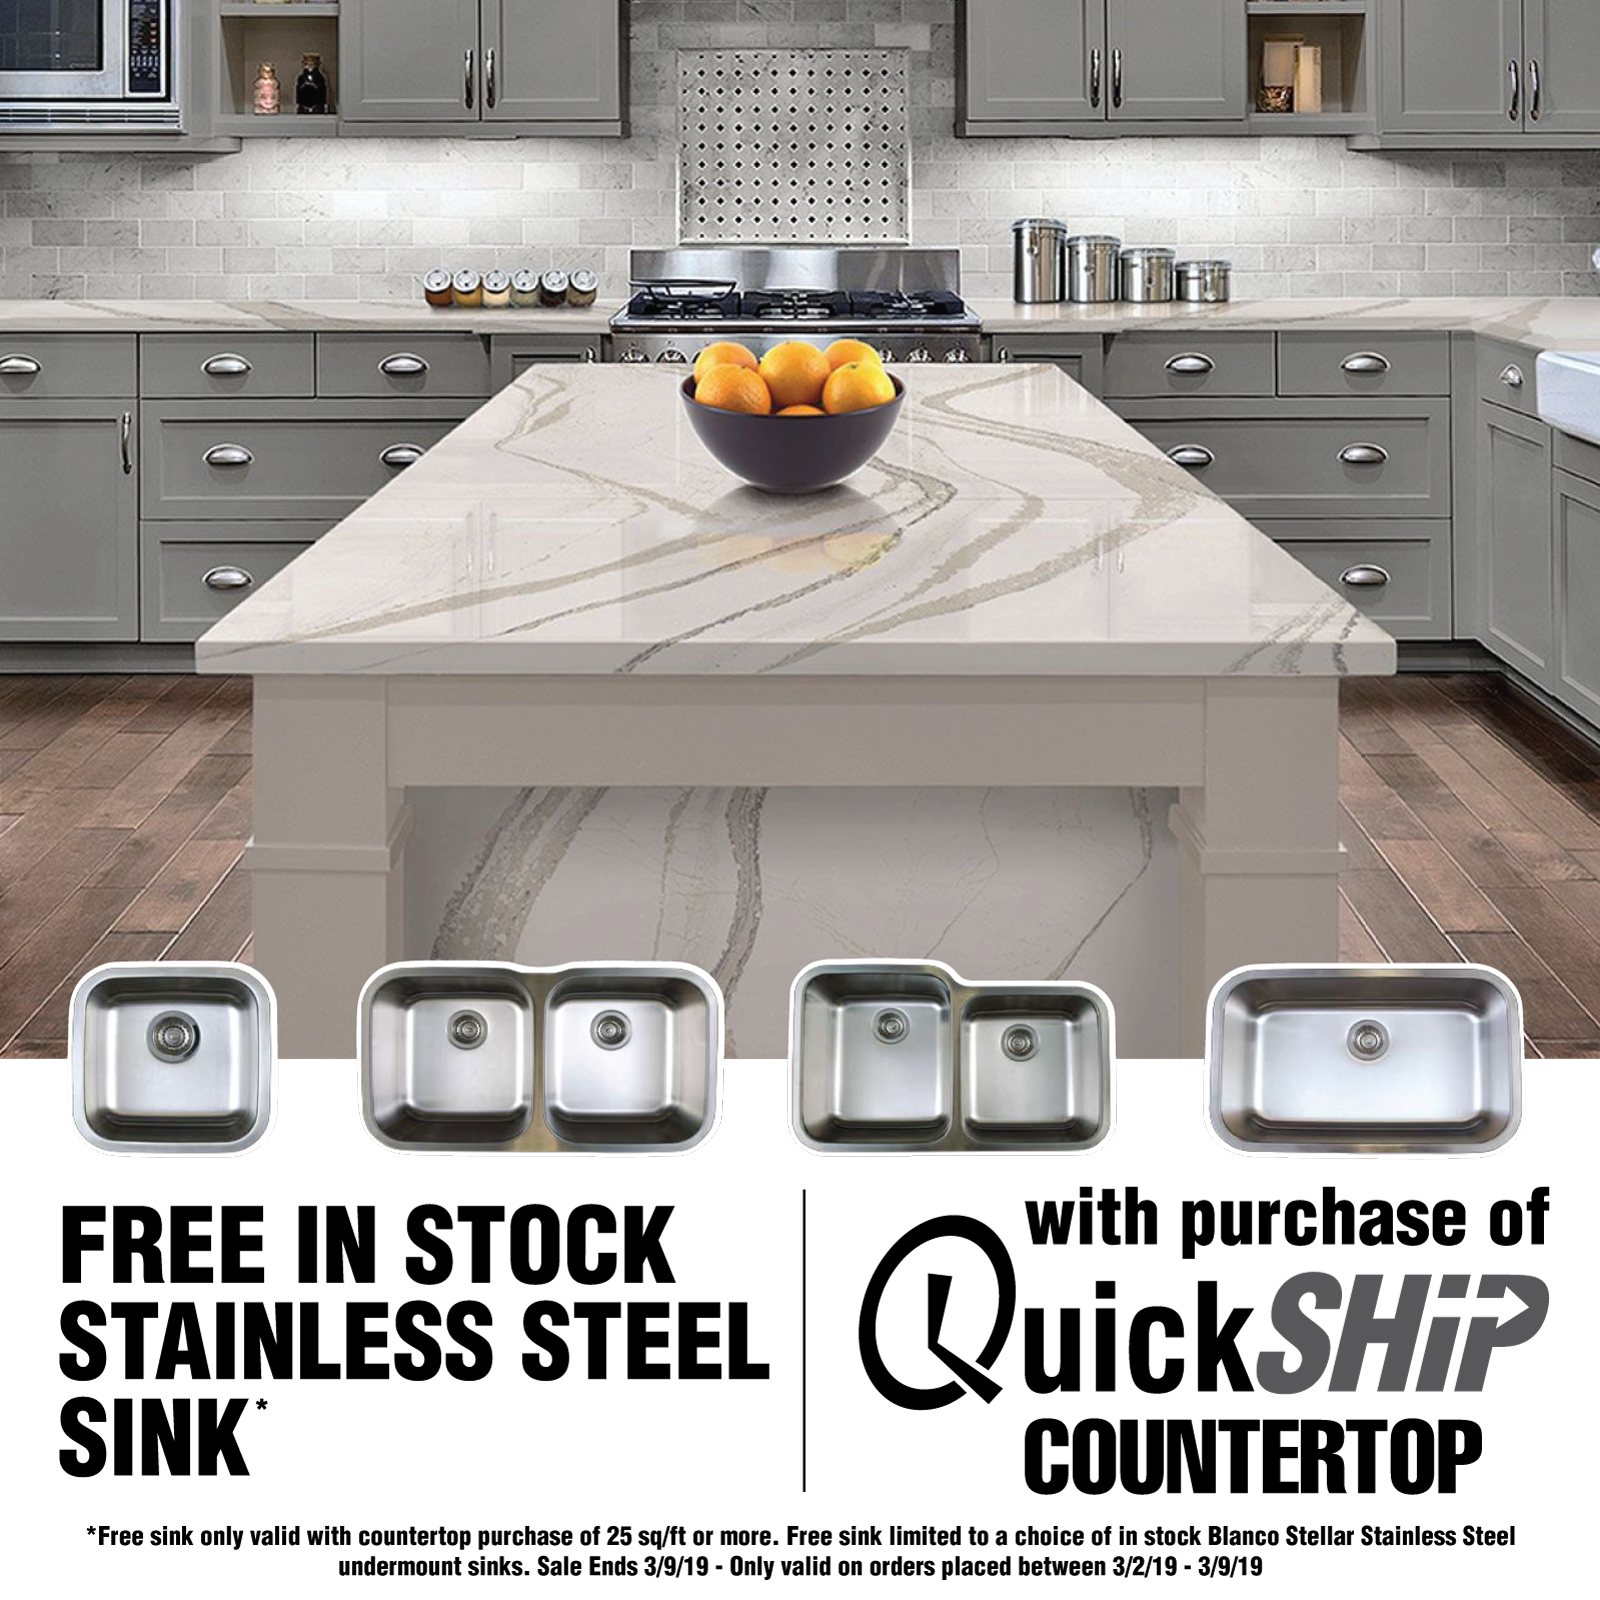 Kitchen Faucets Canada Shipping Cambria Quartz: Free Stainless Steel Sink With Quick Ship Countertop